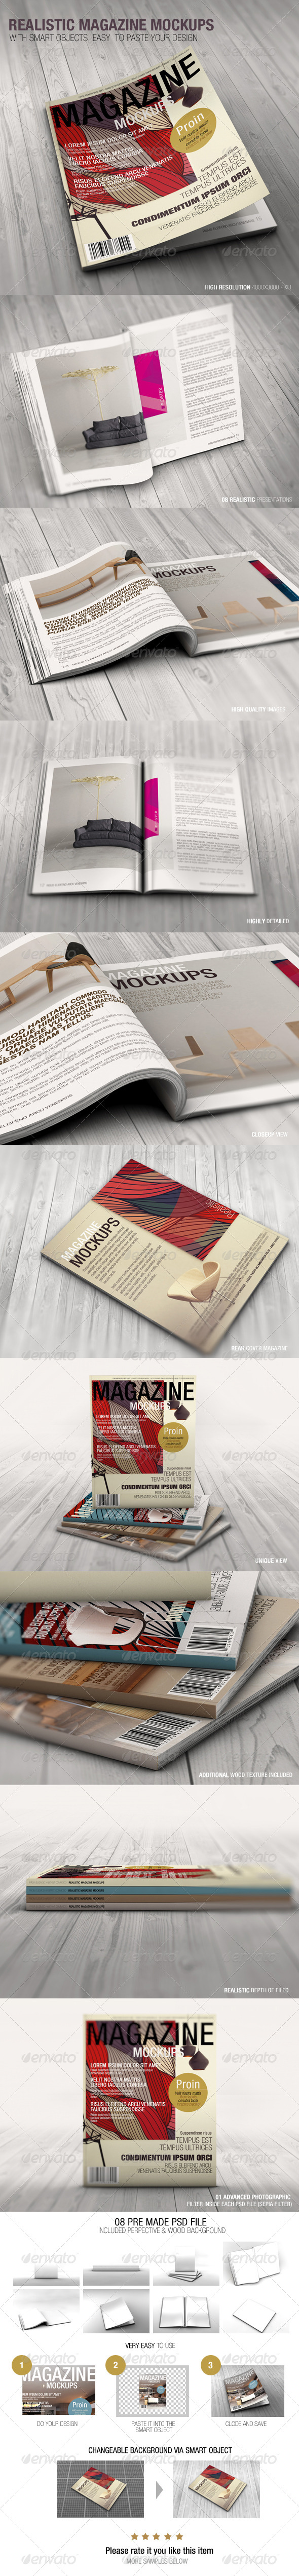 Realistic Magazine Mockups 08 Pre made psd file Perpective Floor